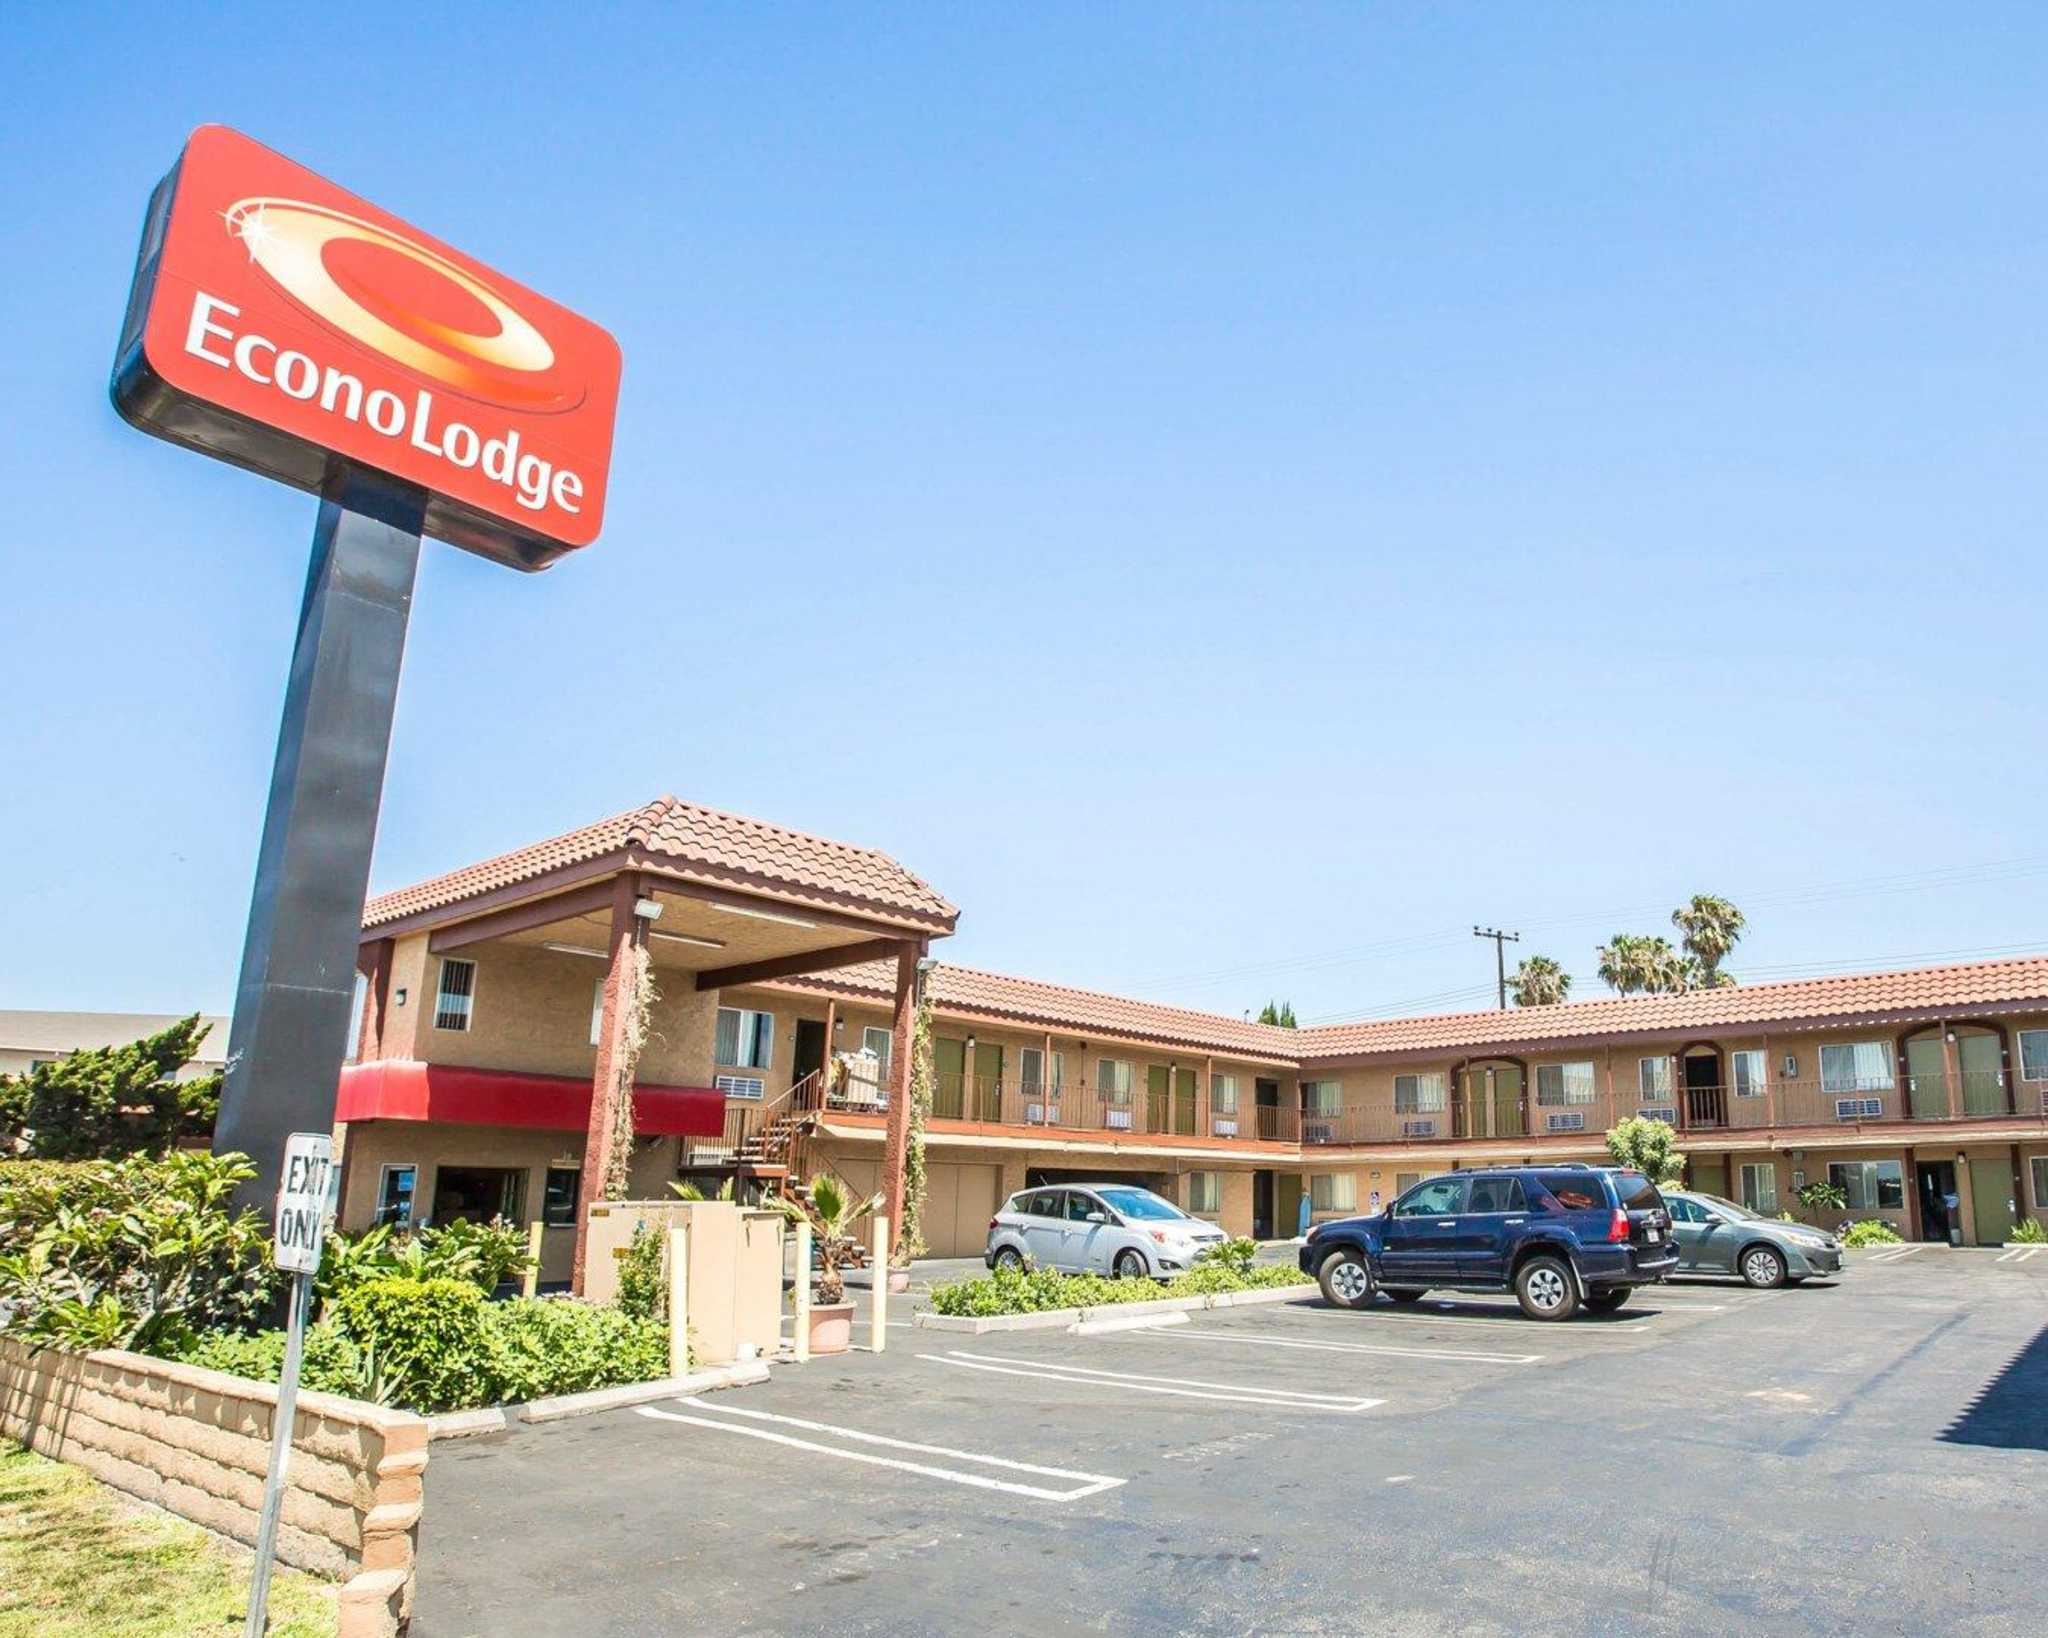 econo lodge carson near stubhub center coupons carson ca near me 8coupons. Black Bedroom Furniture Sets. Home Design Ideas